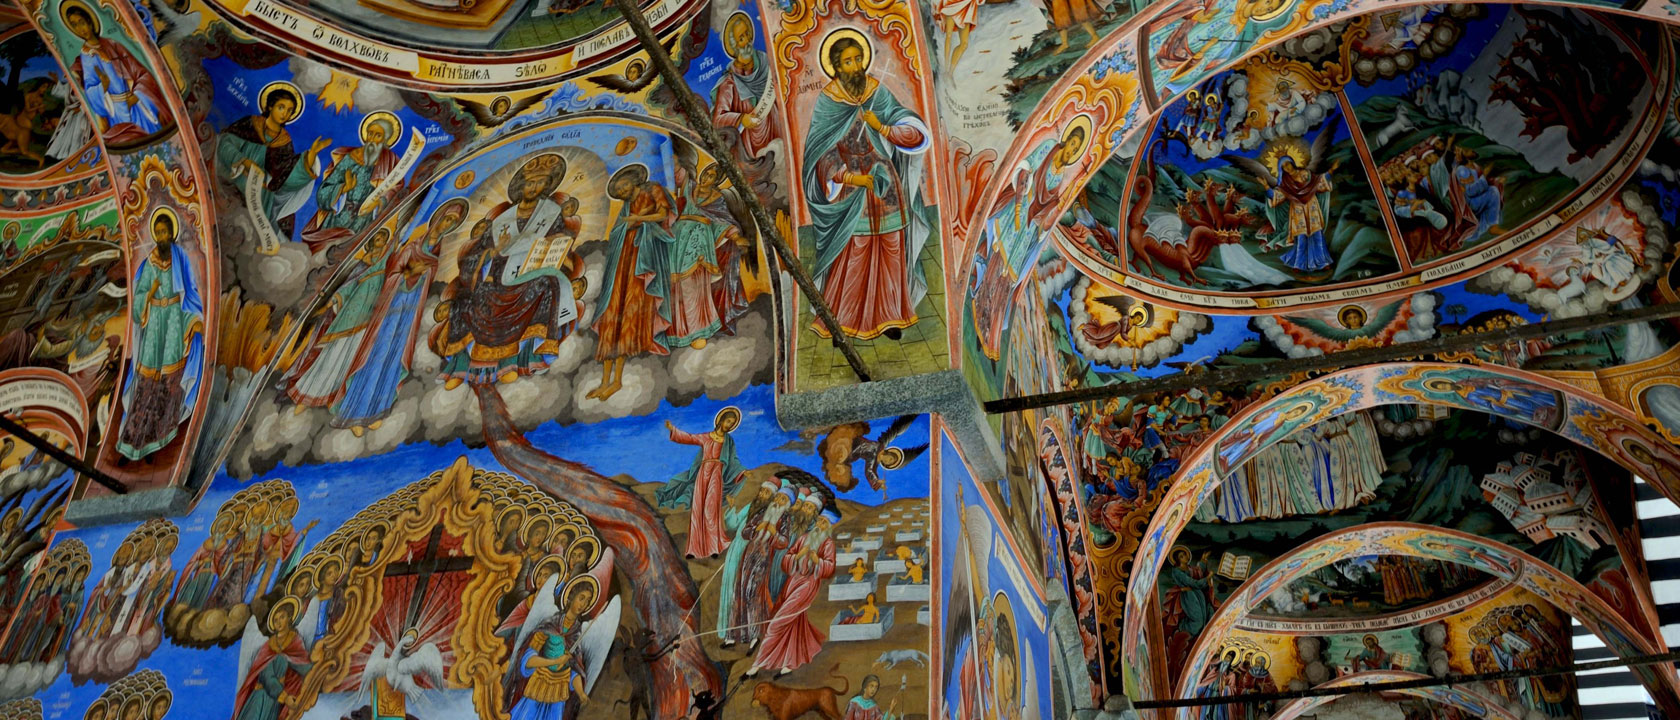 Frescoes, Portico of Rila Monastery, Bulgaria - by Christopher Wood